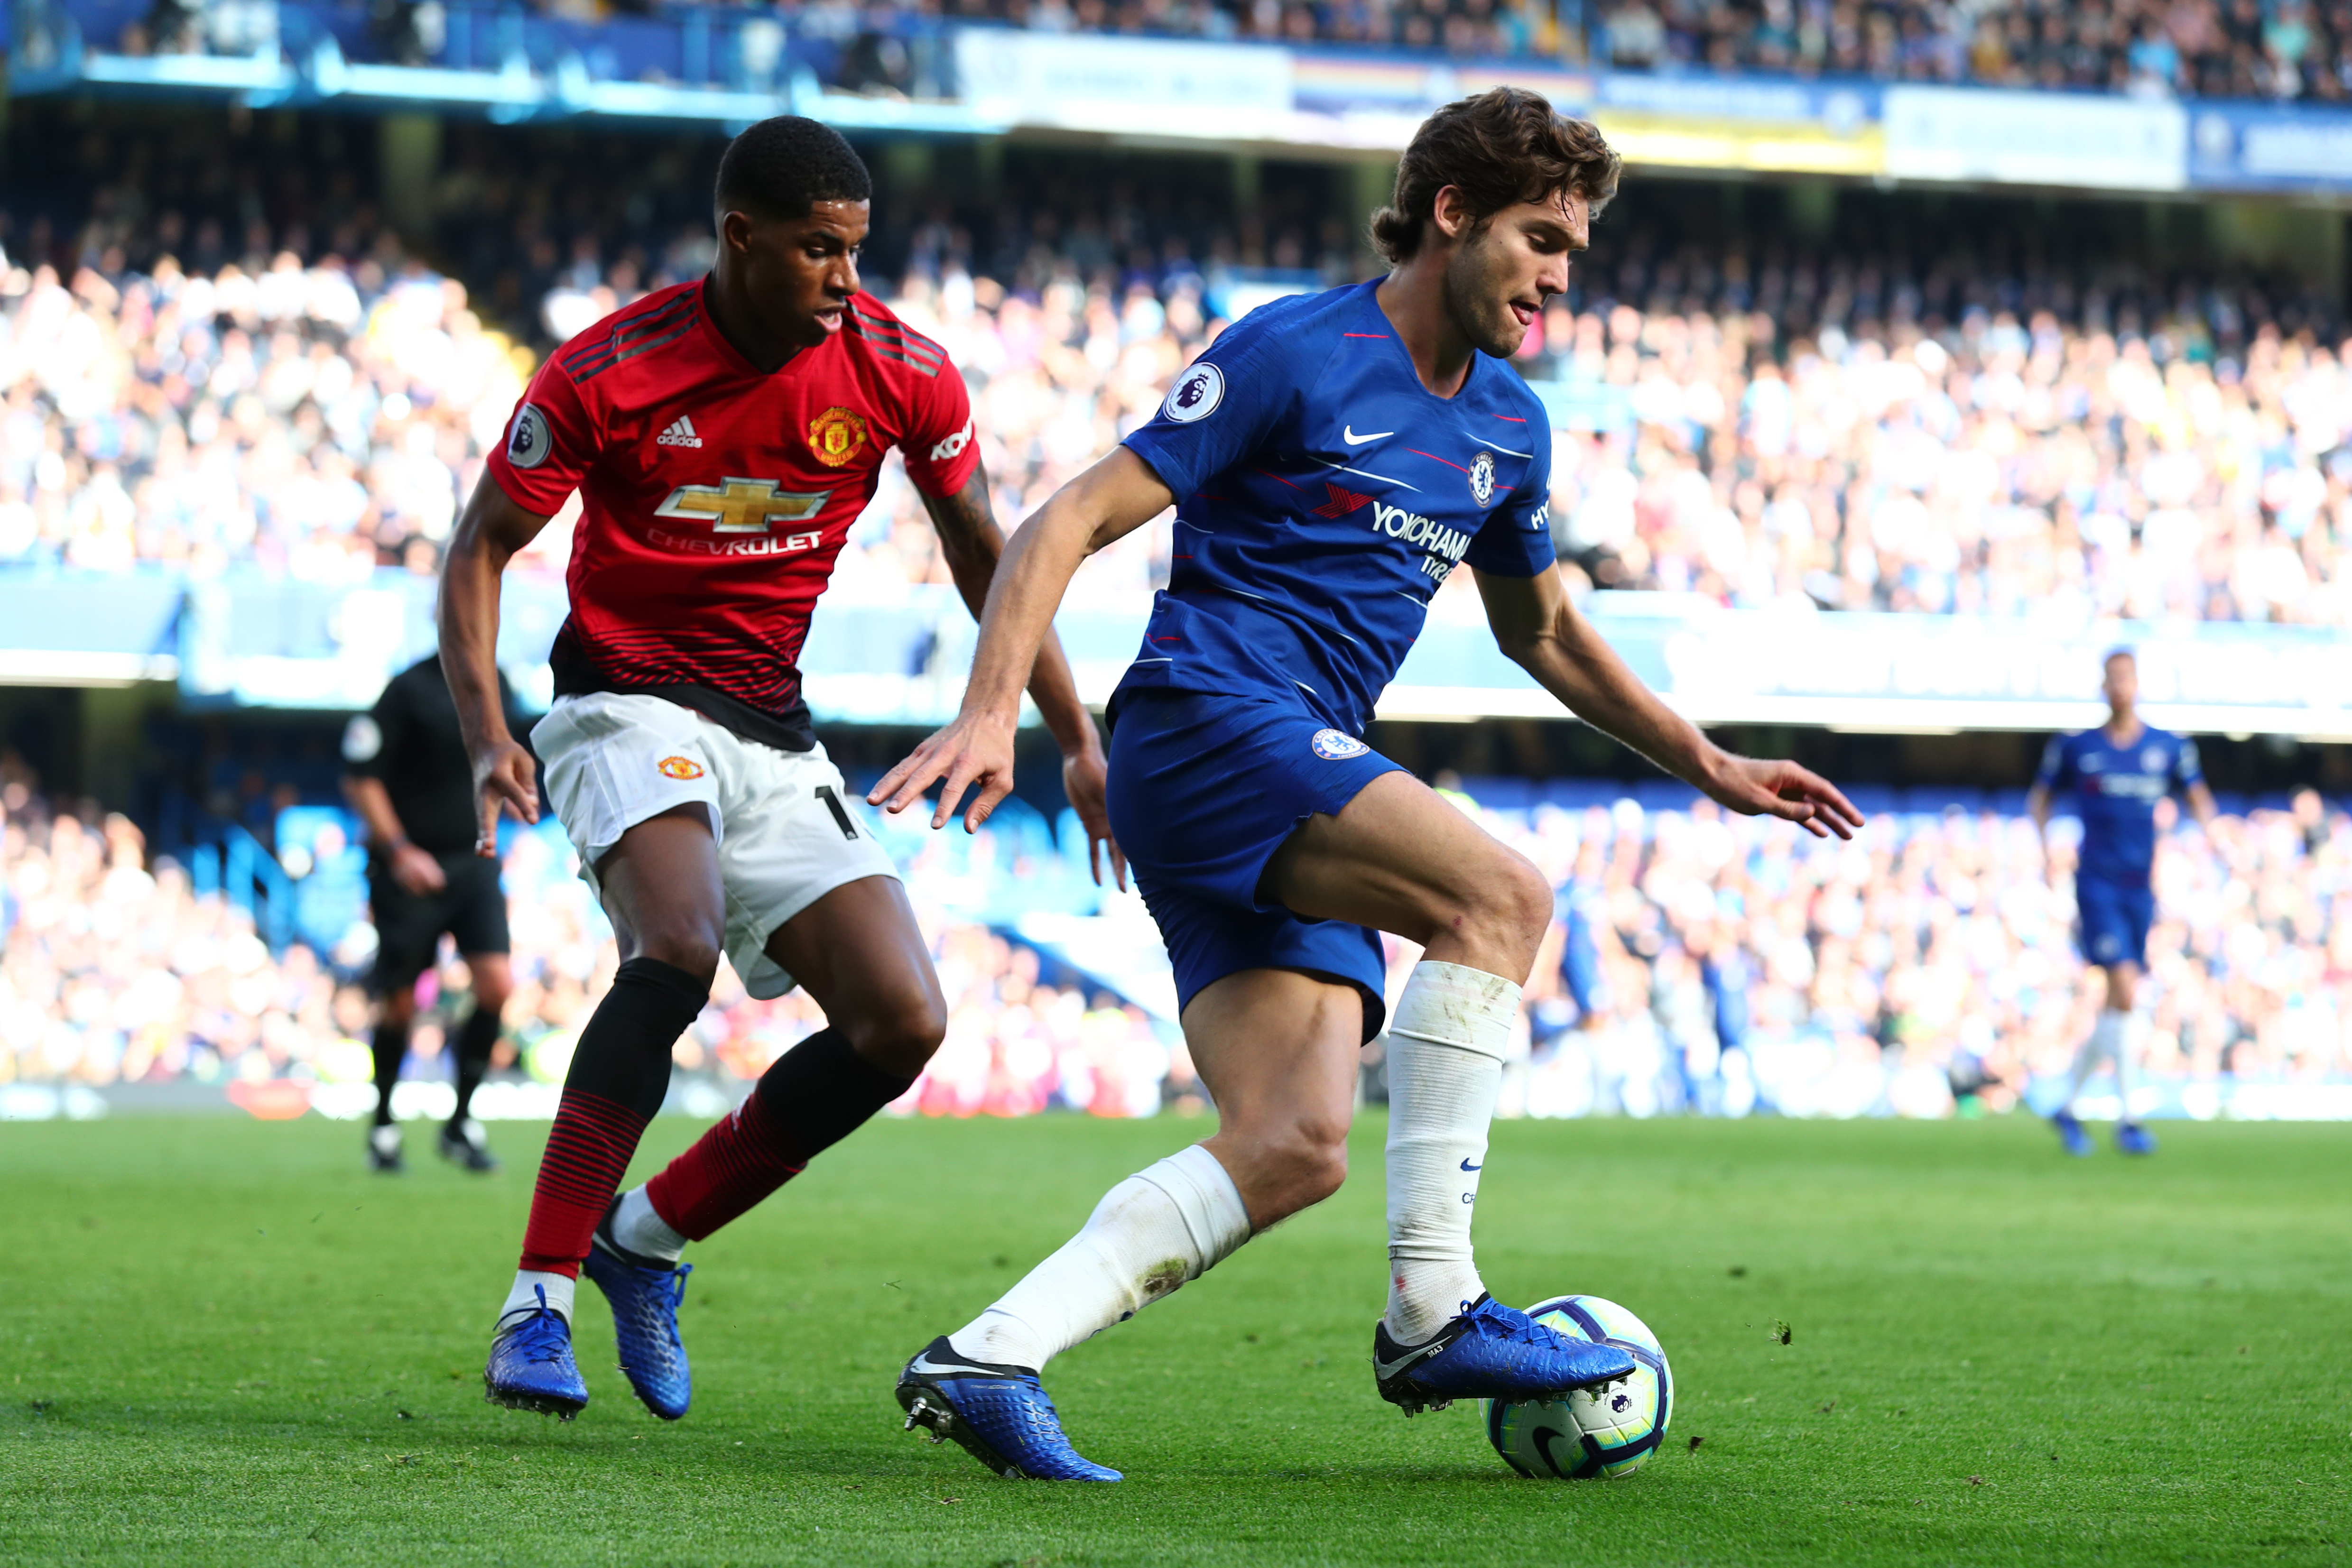 Marcus Rashford Marcos Alonso Chelsea Manchester United Premier League 10/20/18